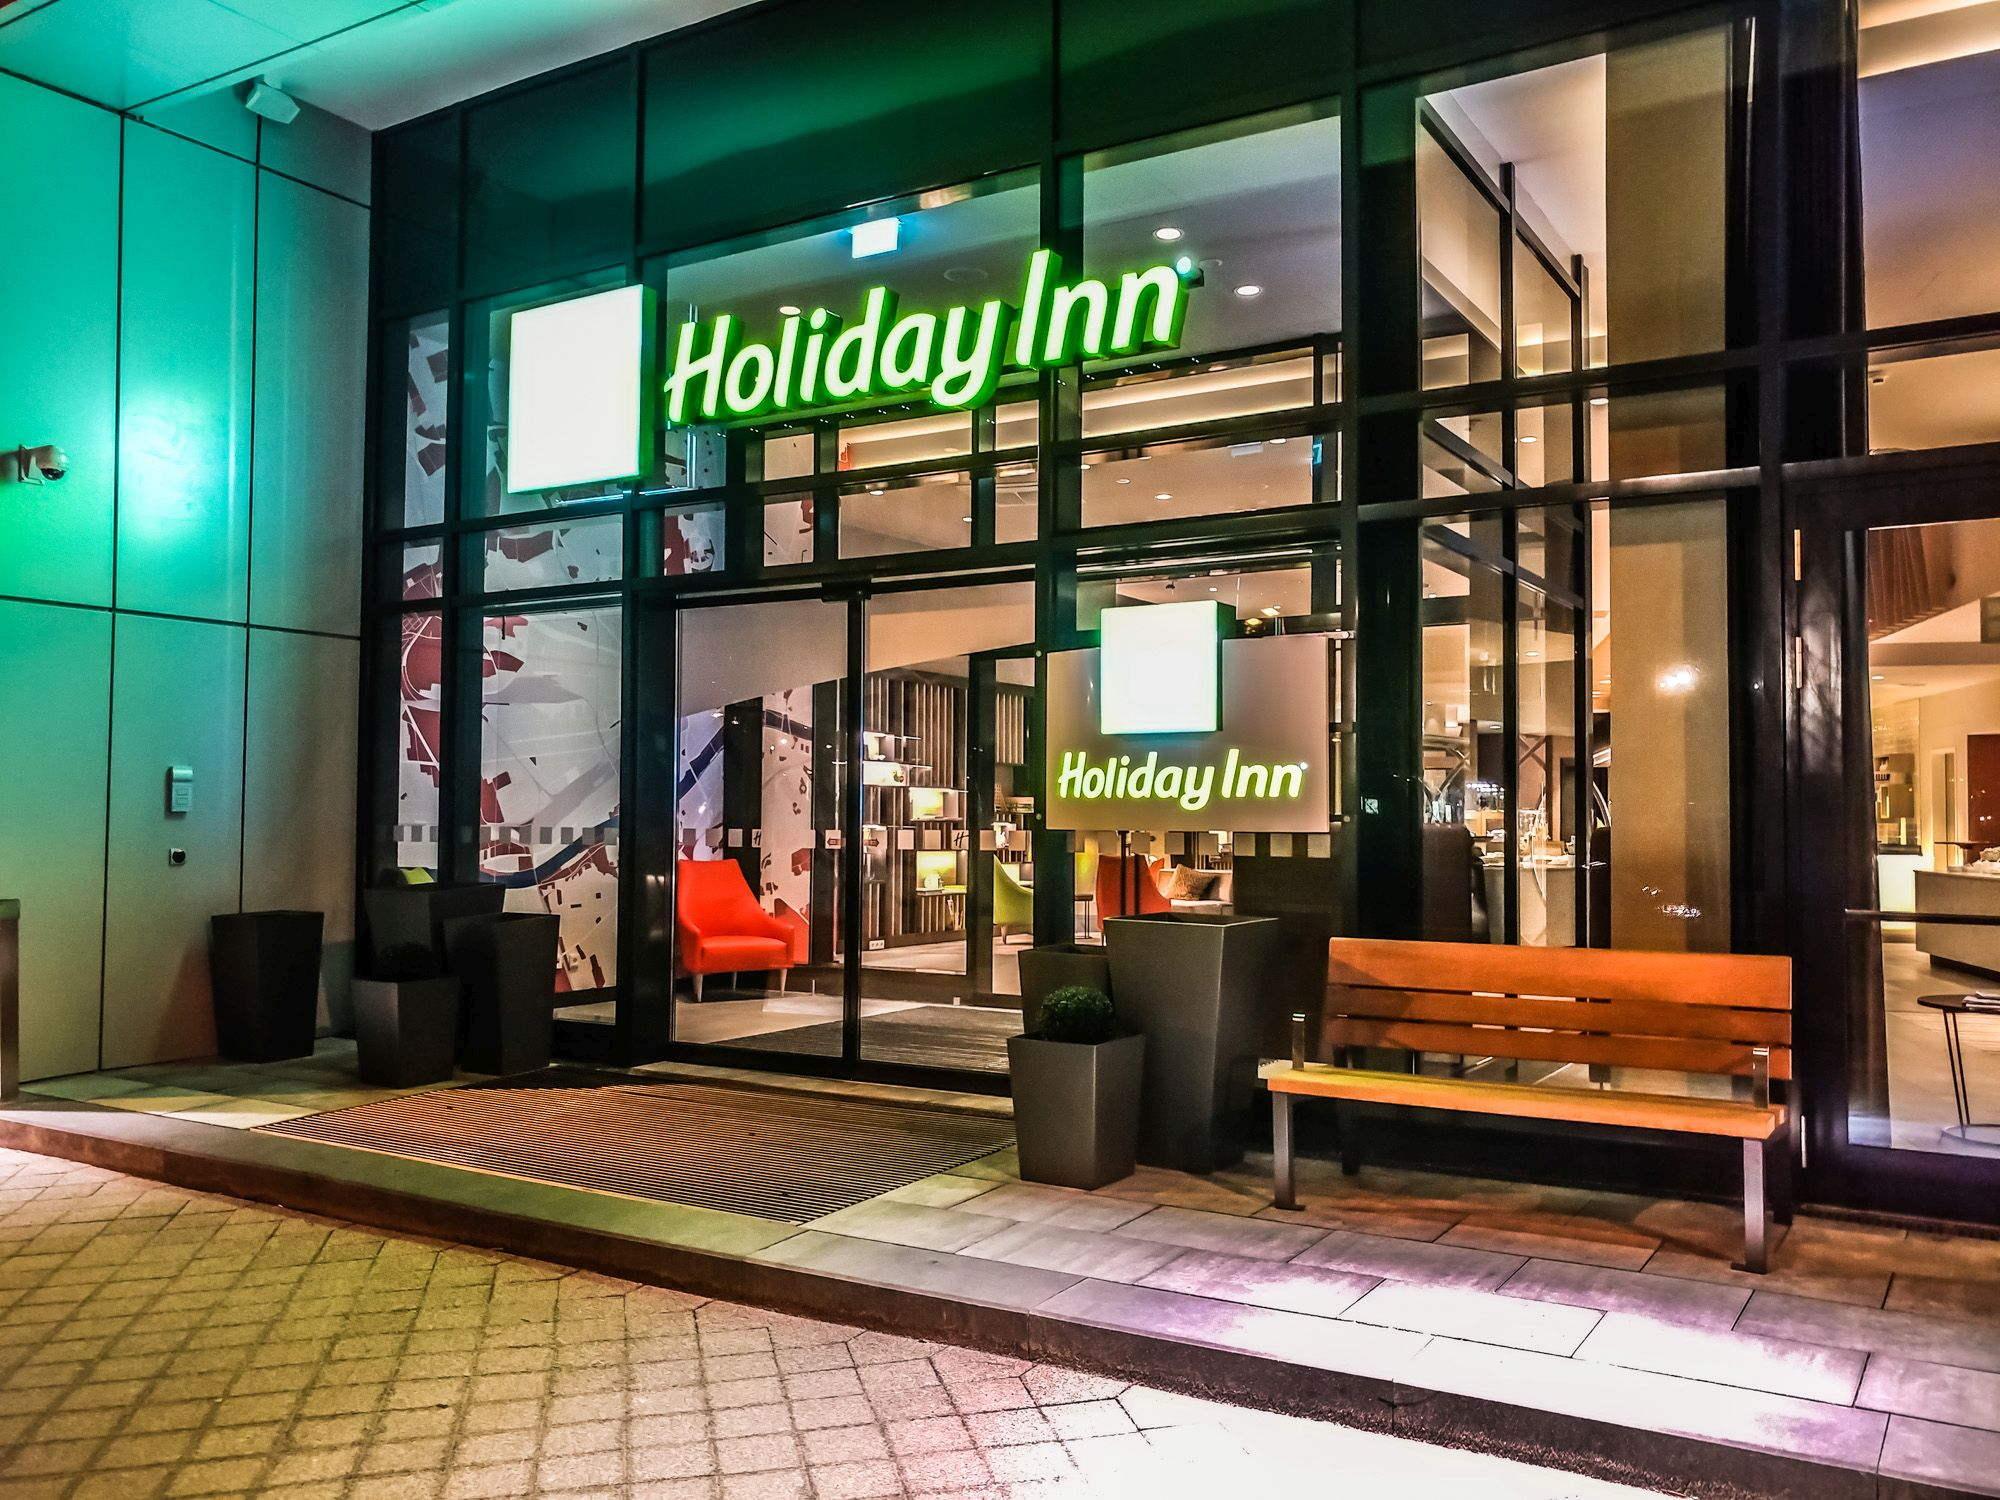 Hotel Review: Holiday Inn Frankfurt Airport – Executive King Room